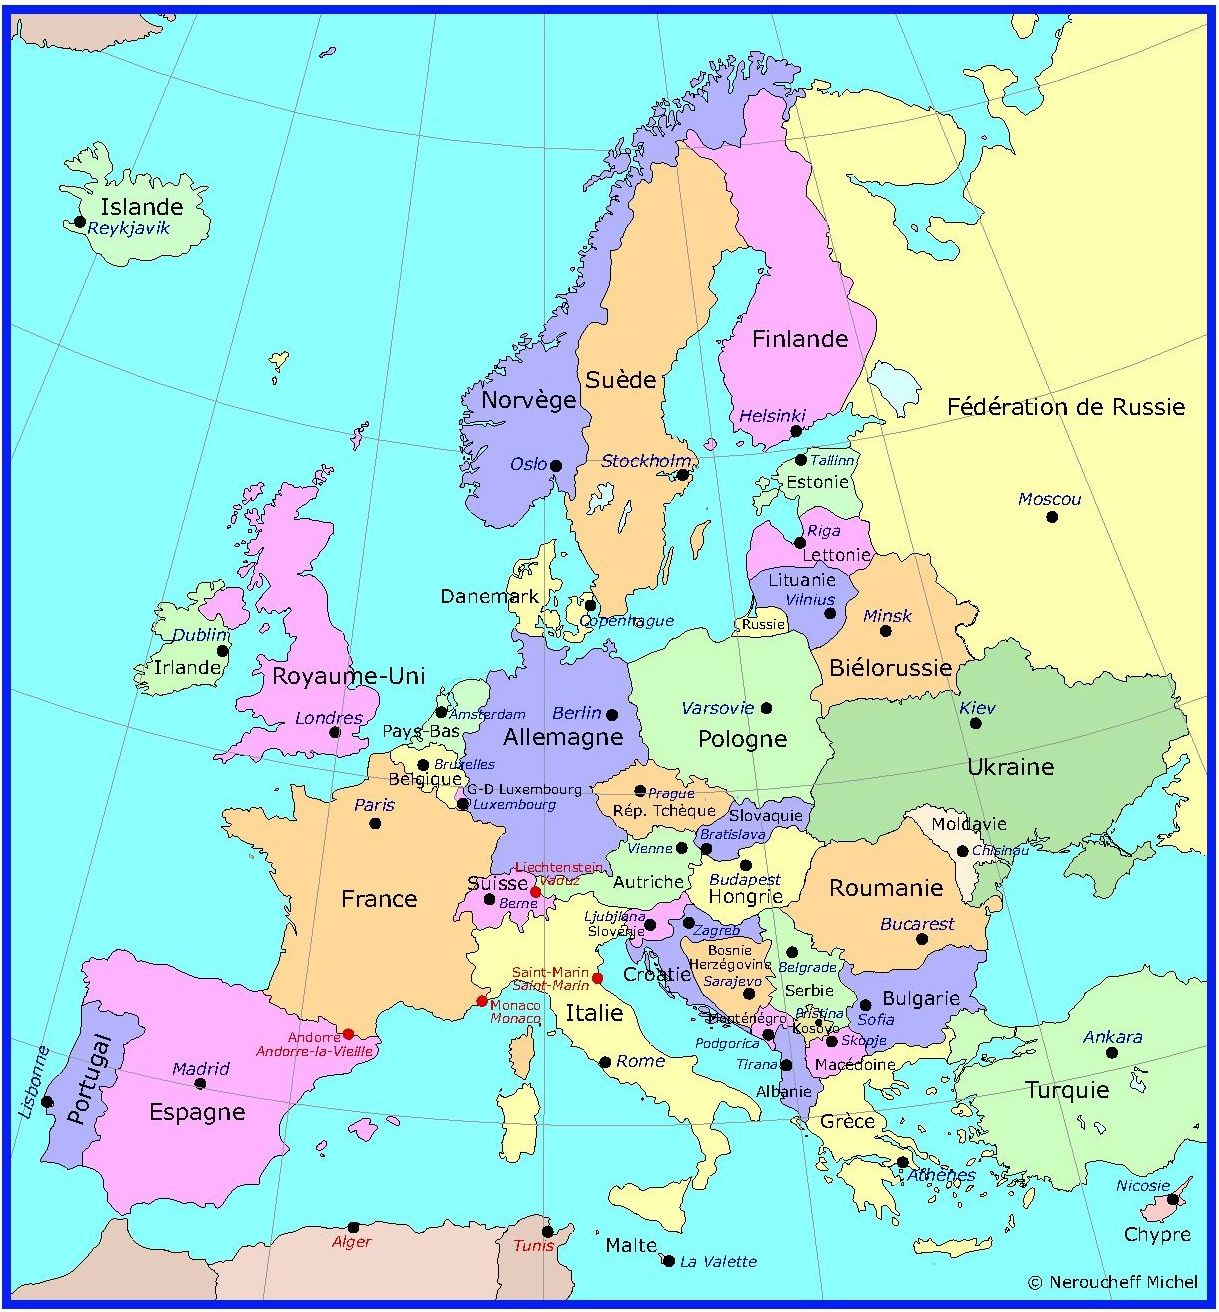 Carte Capitales Des Pays D'europe | Capital Des Pays à Carte De L Europe Et Capitale